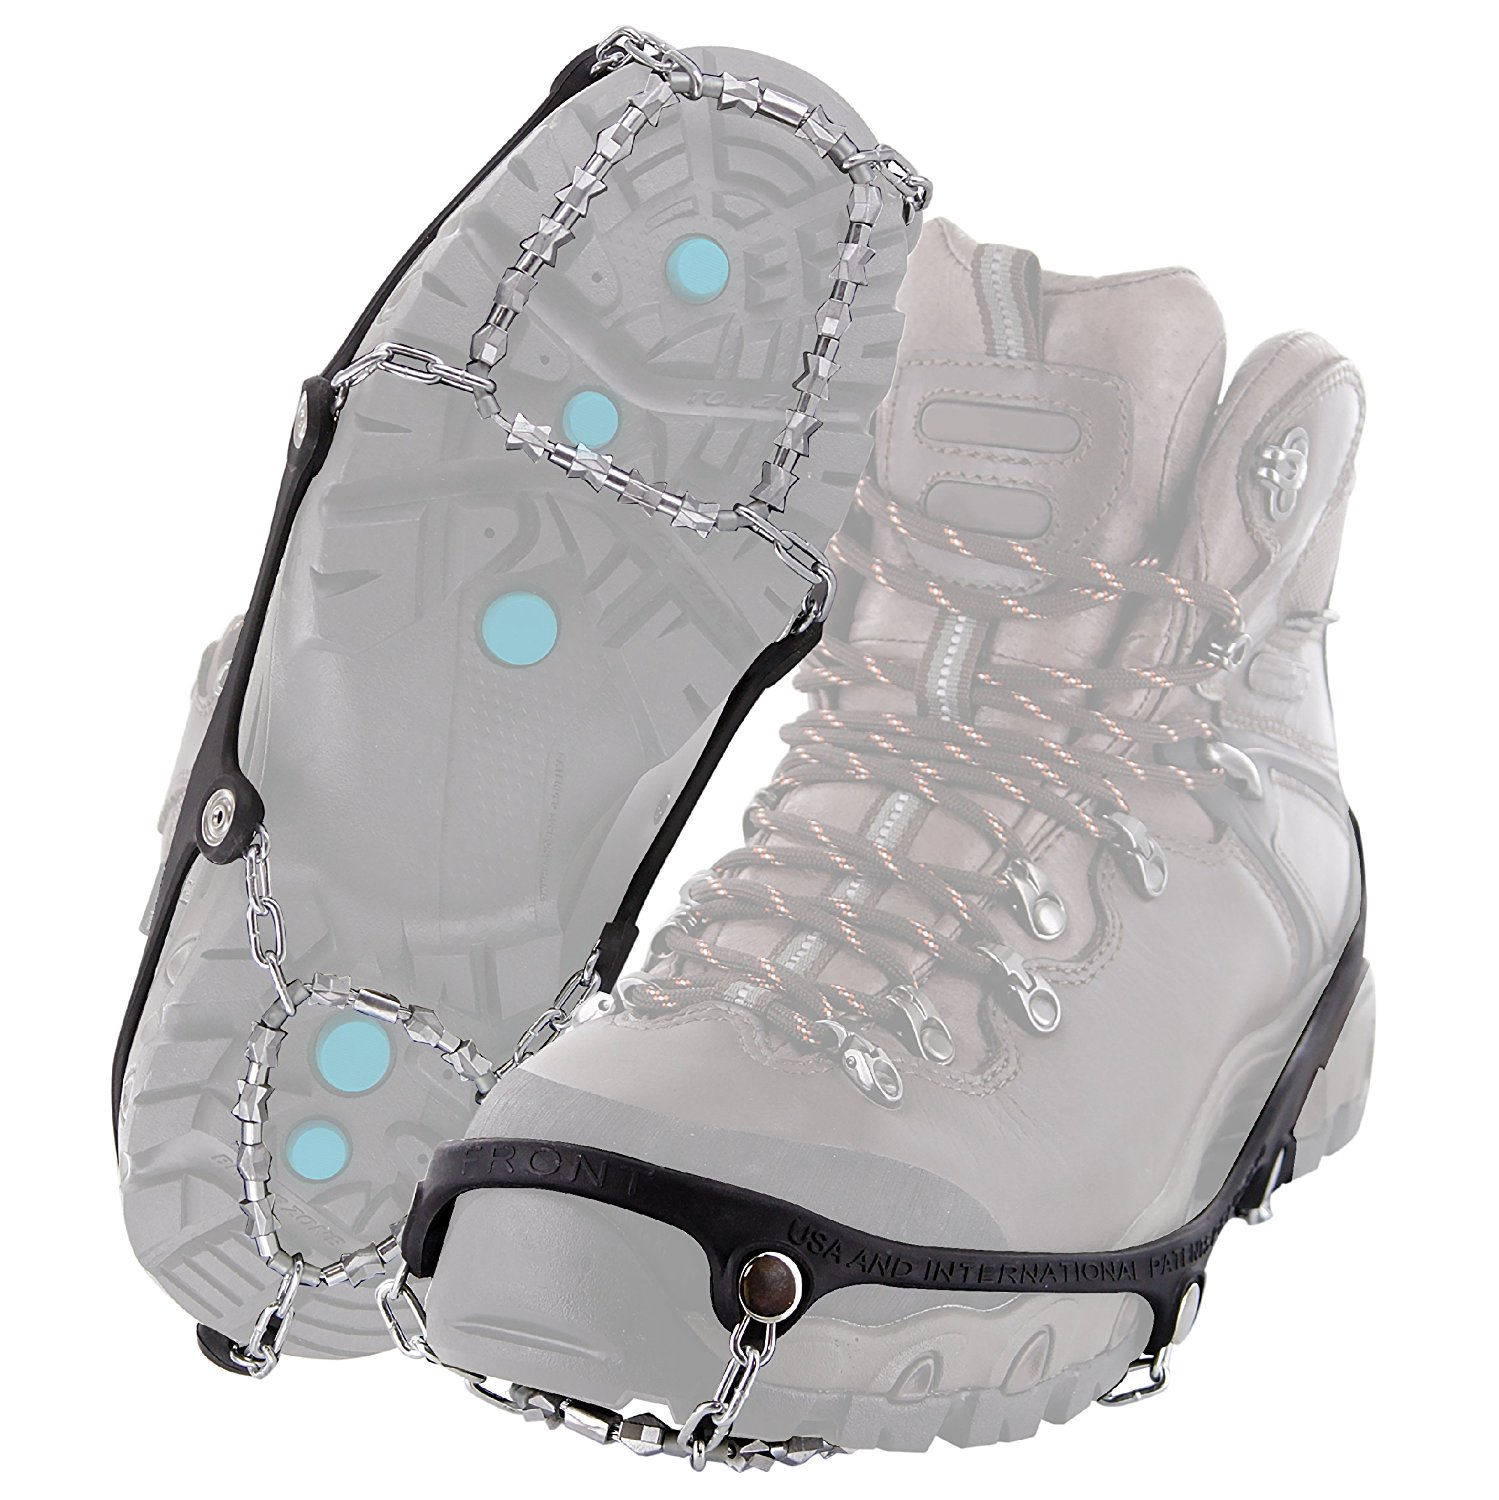 Diamond Grip All-Surface Traction Cleats for Walking on Ice and Snow, Easy Snow TrekkersLarge Size Trekkers Safe Shoes Pro Xxlarge Outdoor AntiSlip 10 Crampon 12.., By YakTrax